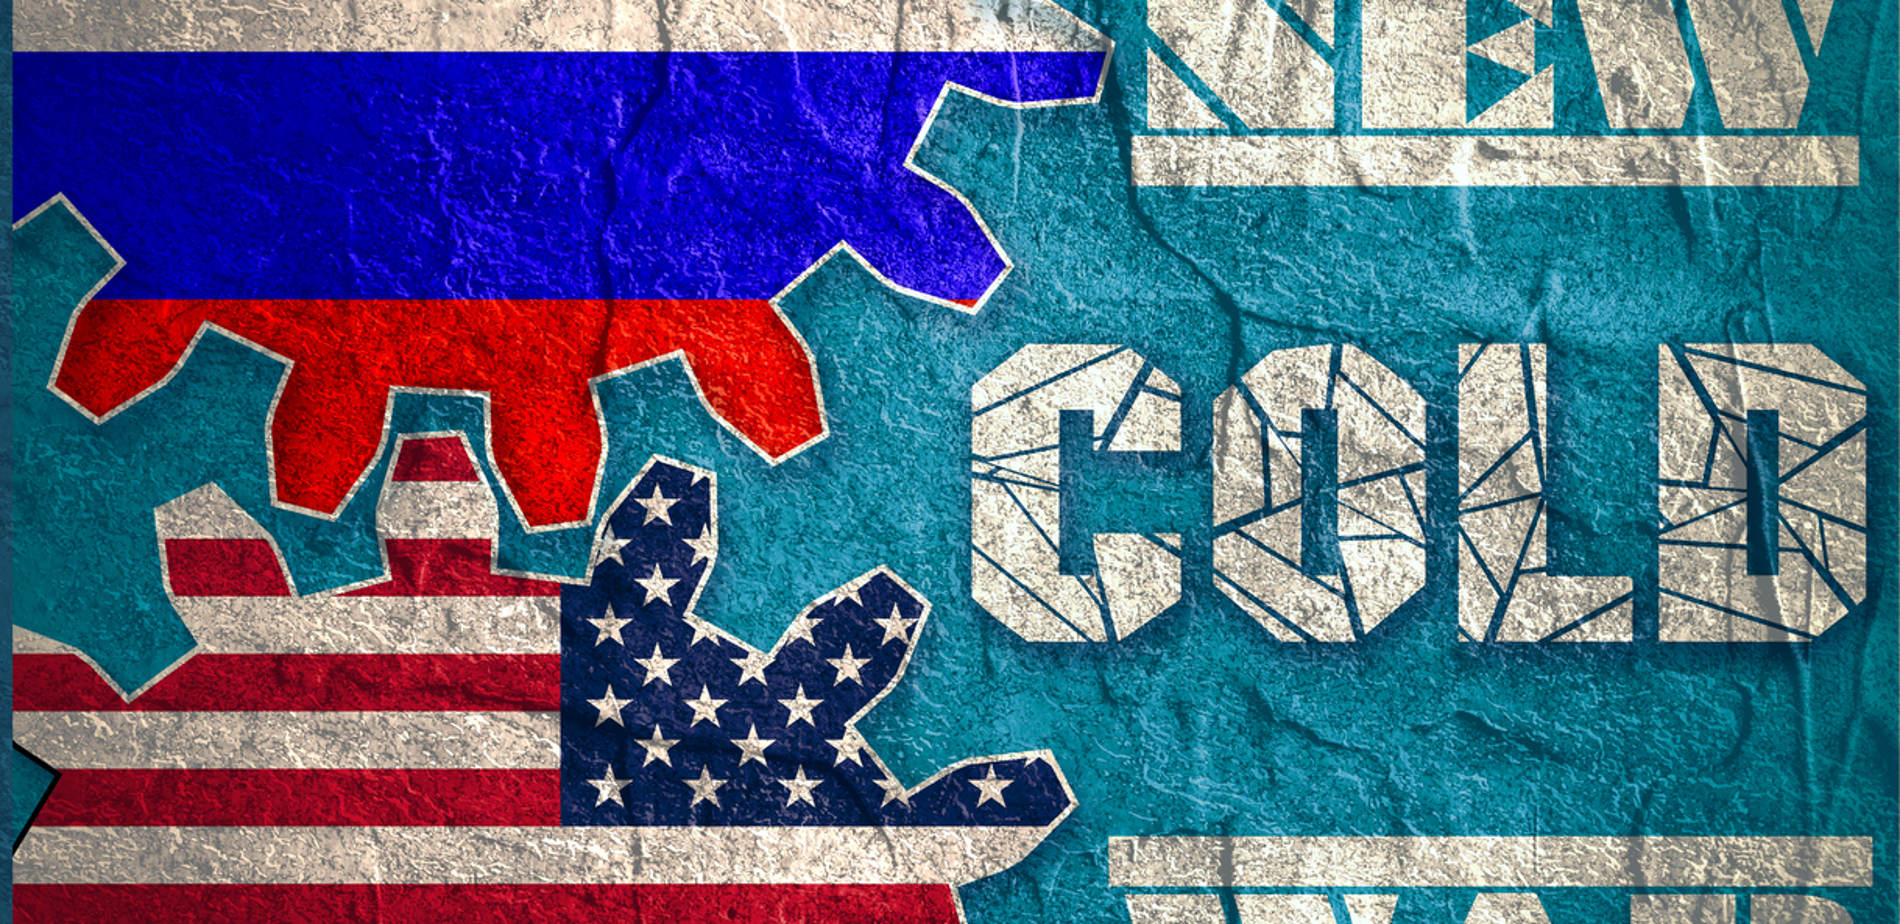 Bitcoin Predictions 2018 >> A New Cold War Has Begun and WW3 Is a Clear Possibility Now